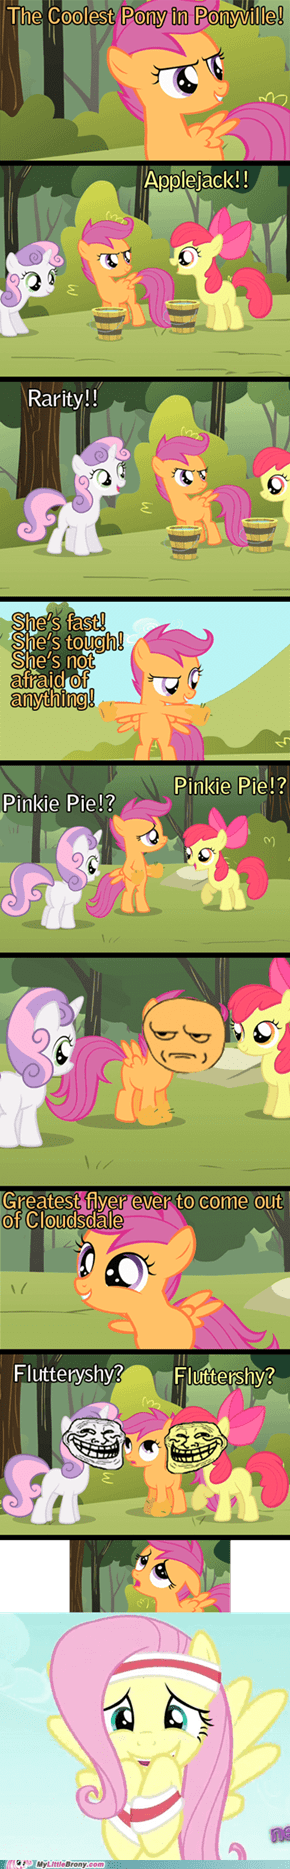 But Fluttershy is Best Pony